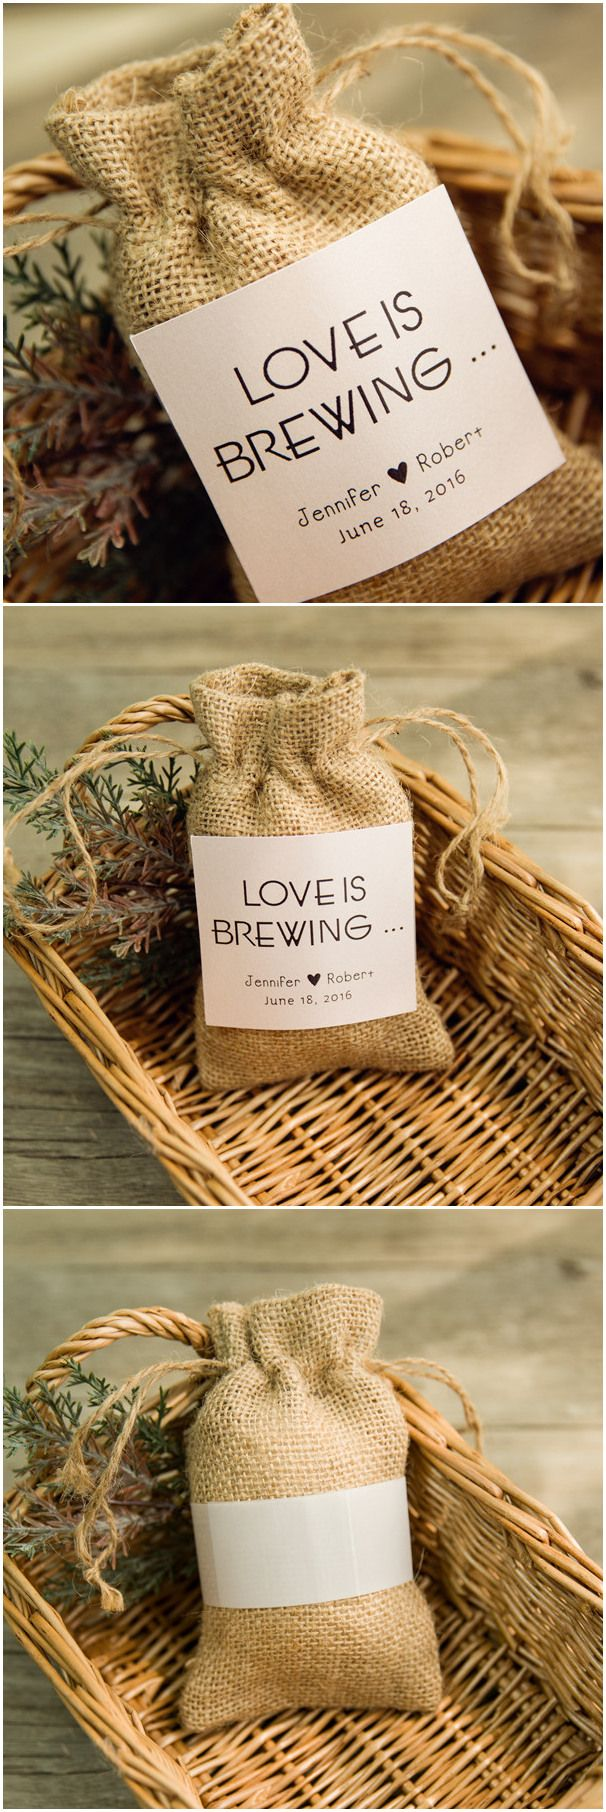 wedding favors wedding favor bags burlap weddings inexpensive wedding